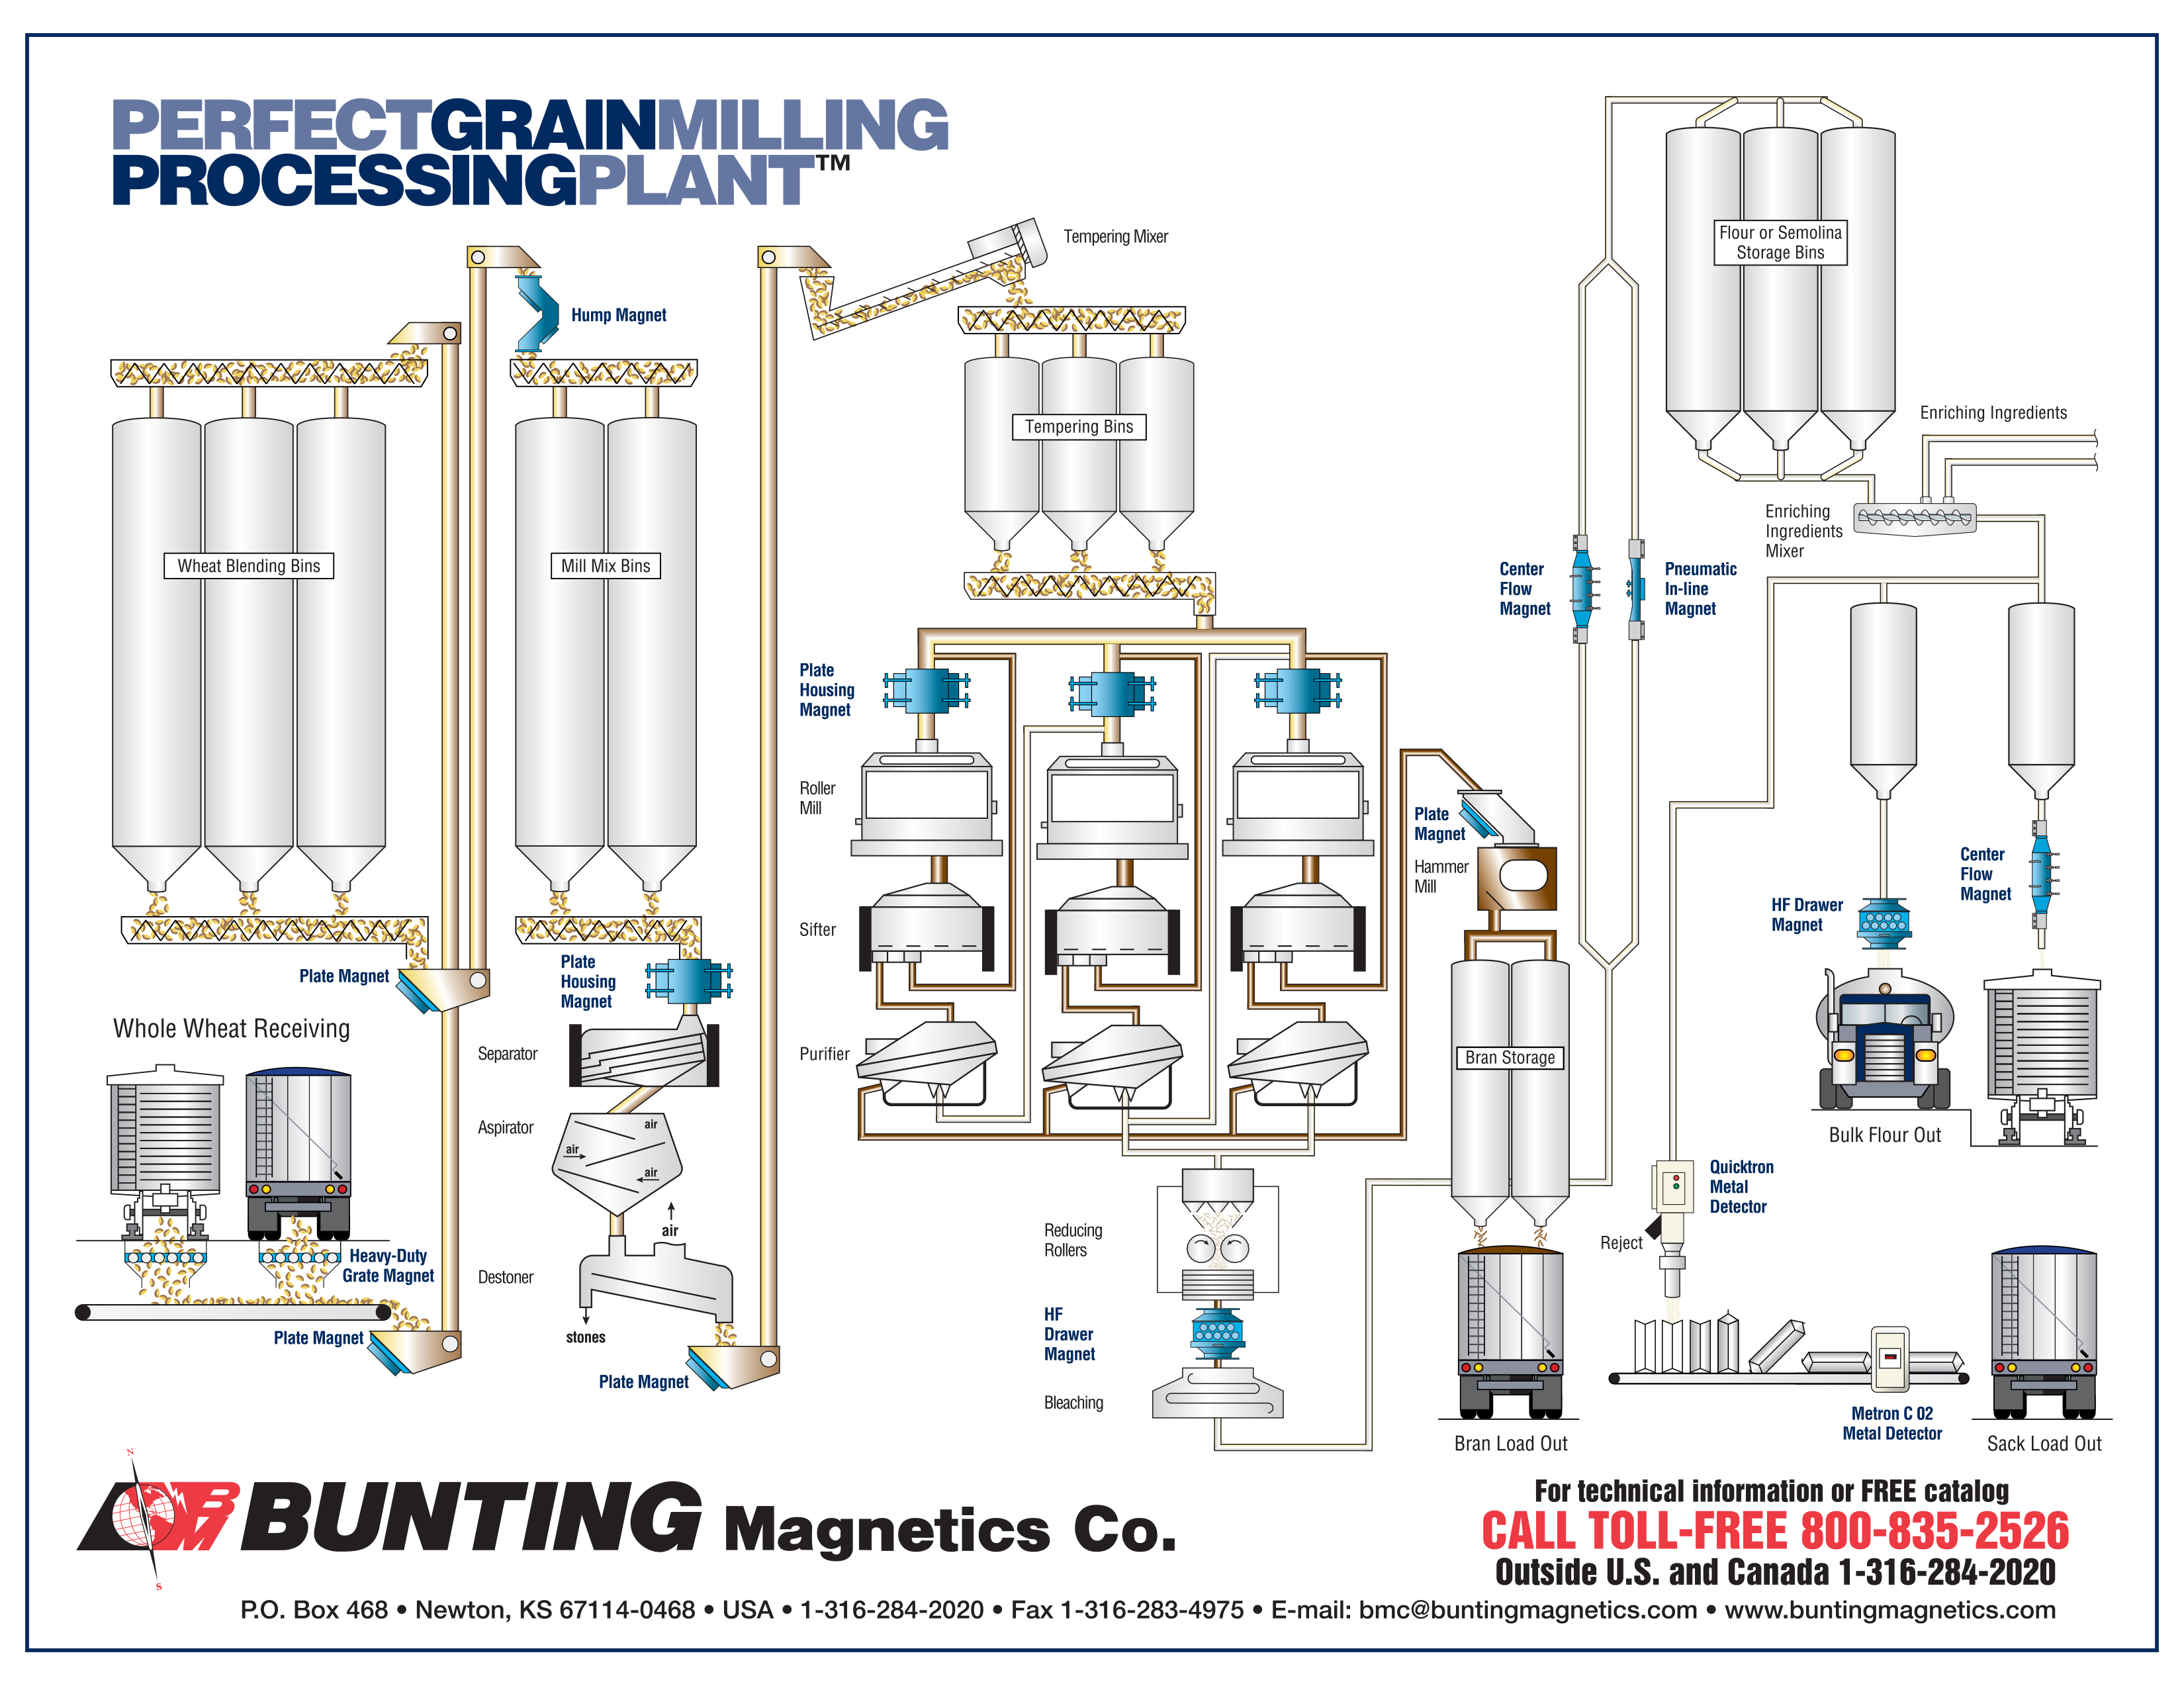 ics planning cycle diagram micron control transformer wiring food grade magnets grain and milling bunting magnetics